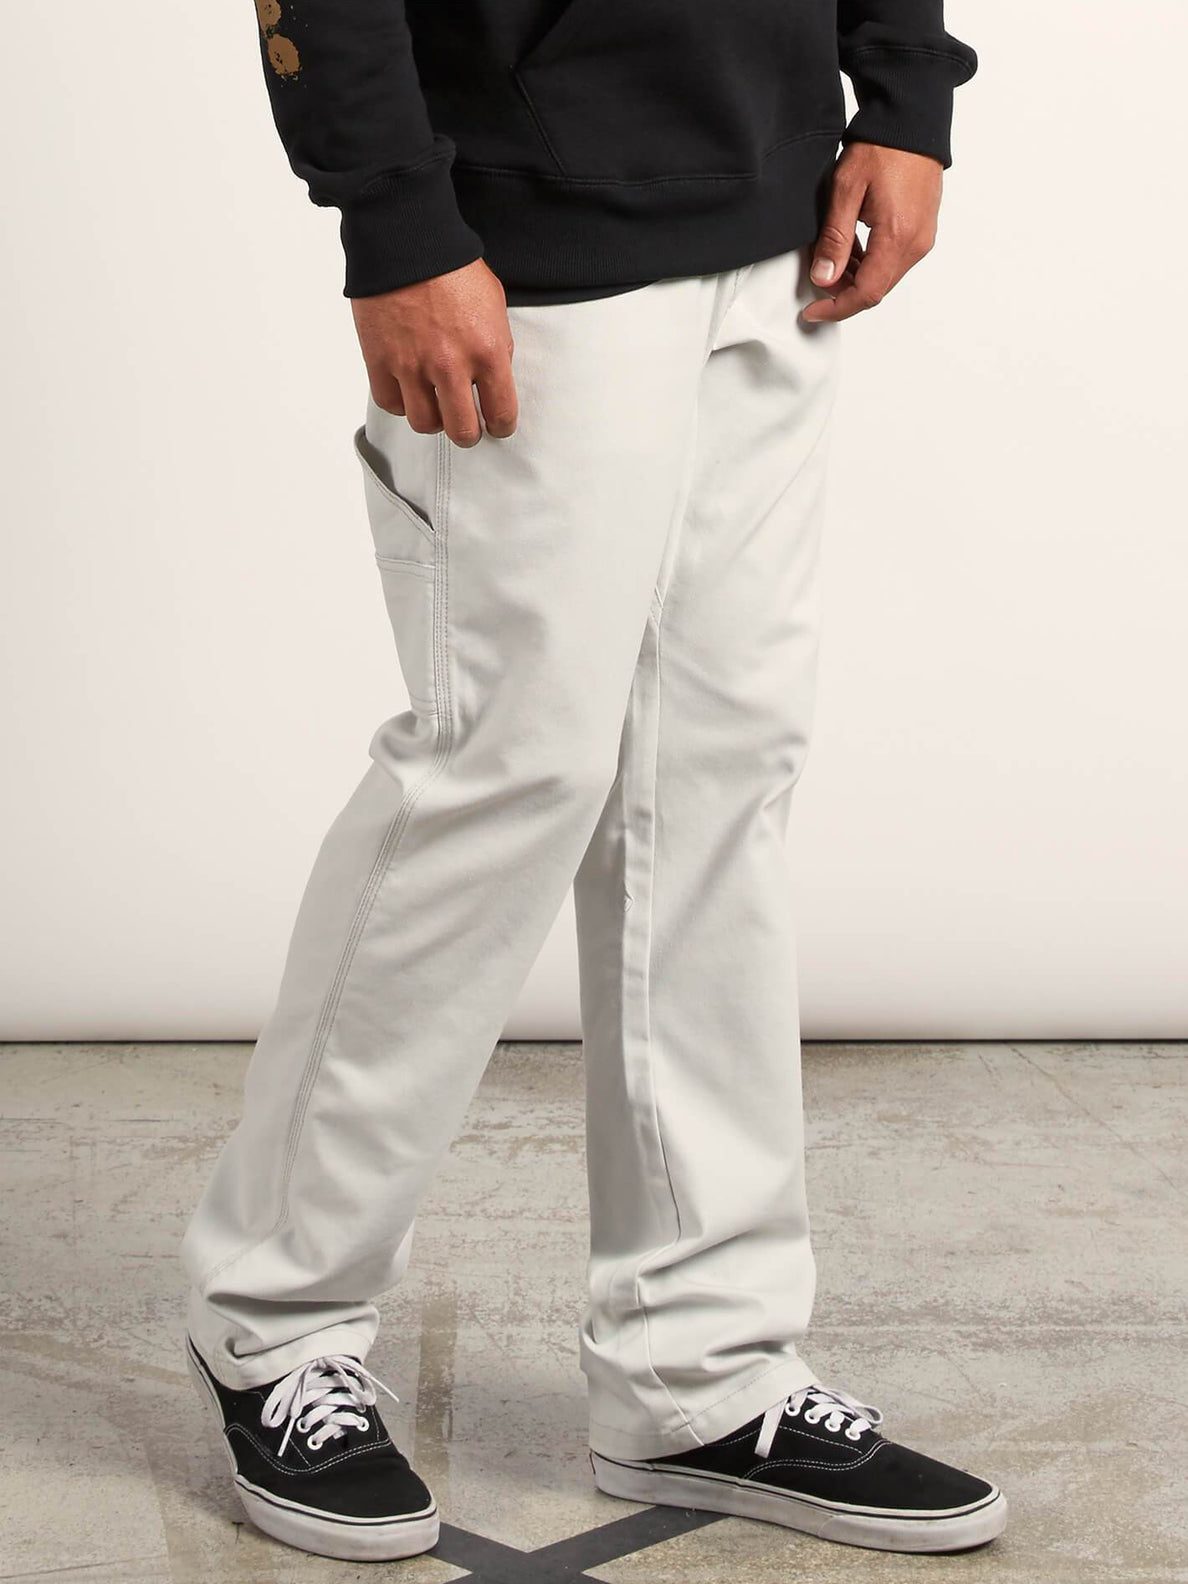 Vsm Whaler Regular Pants In Off White, Alternate View